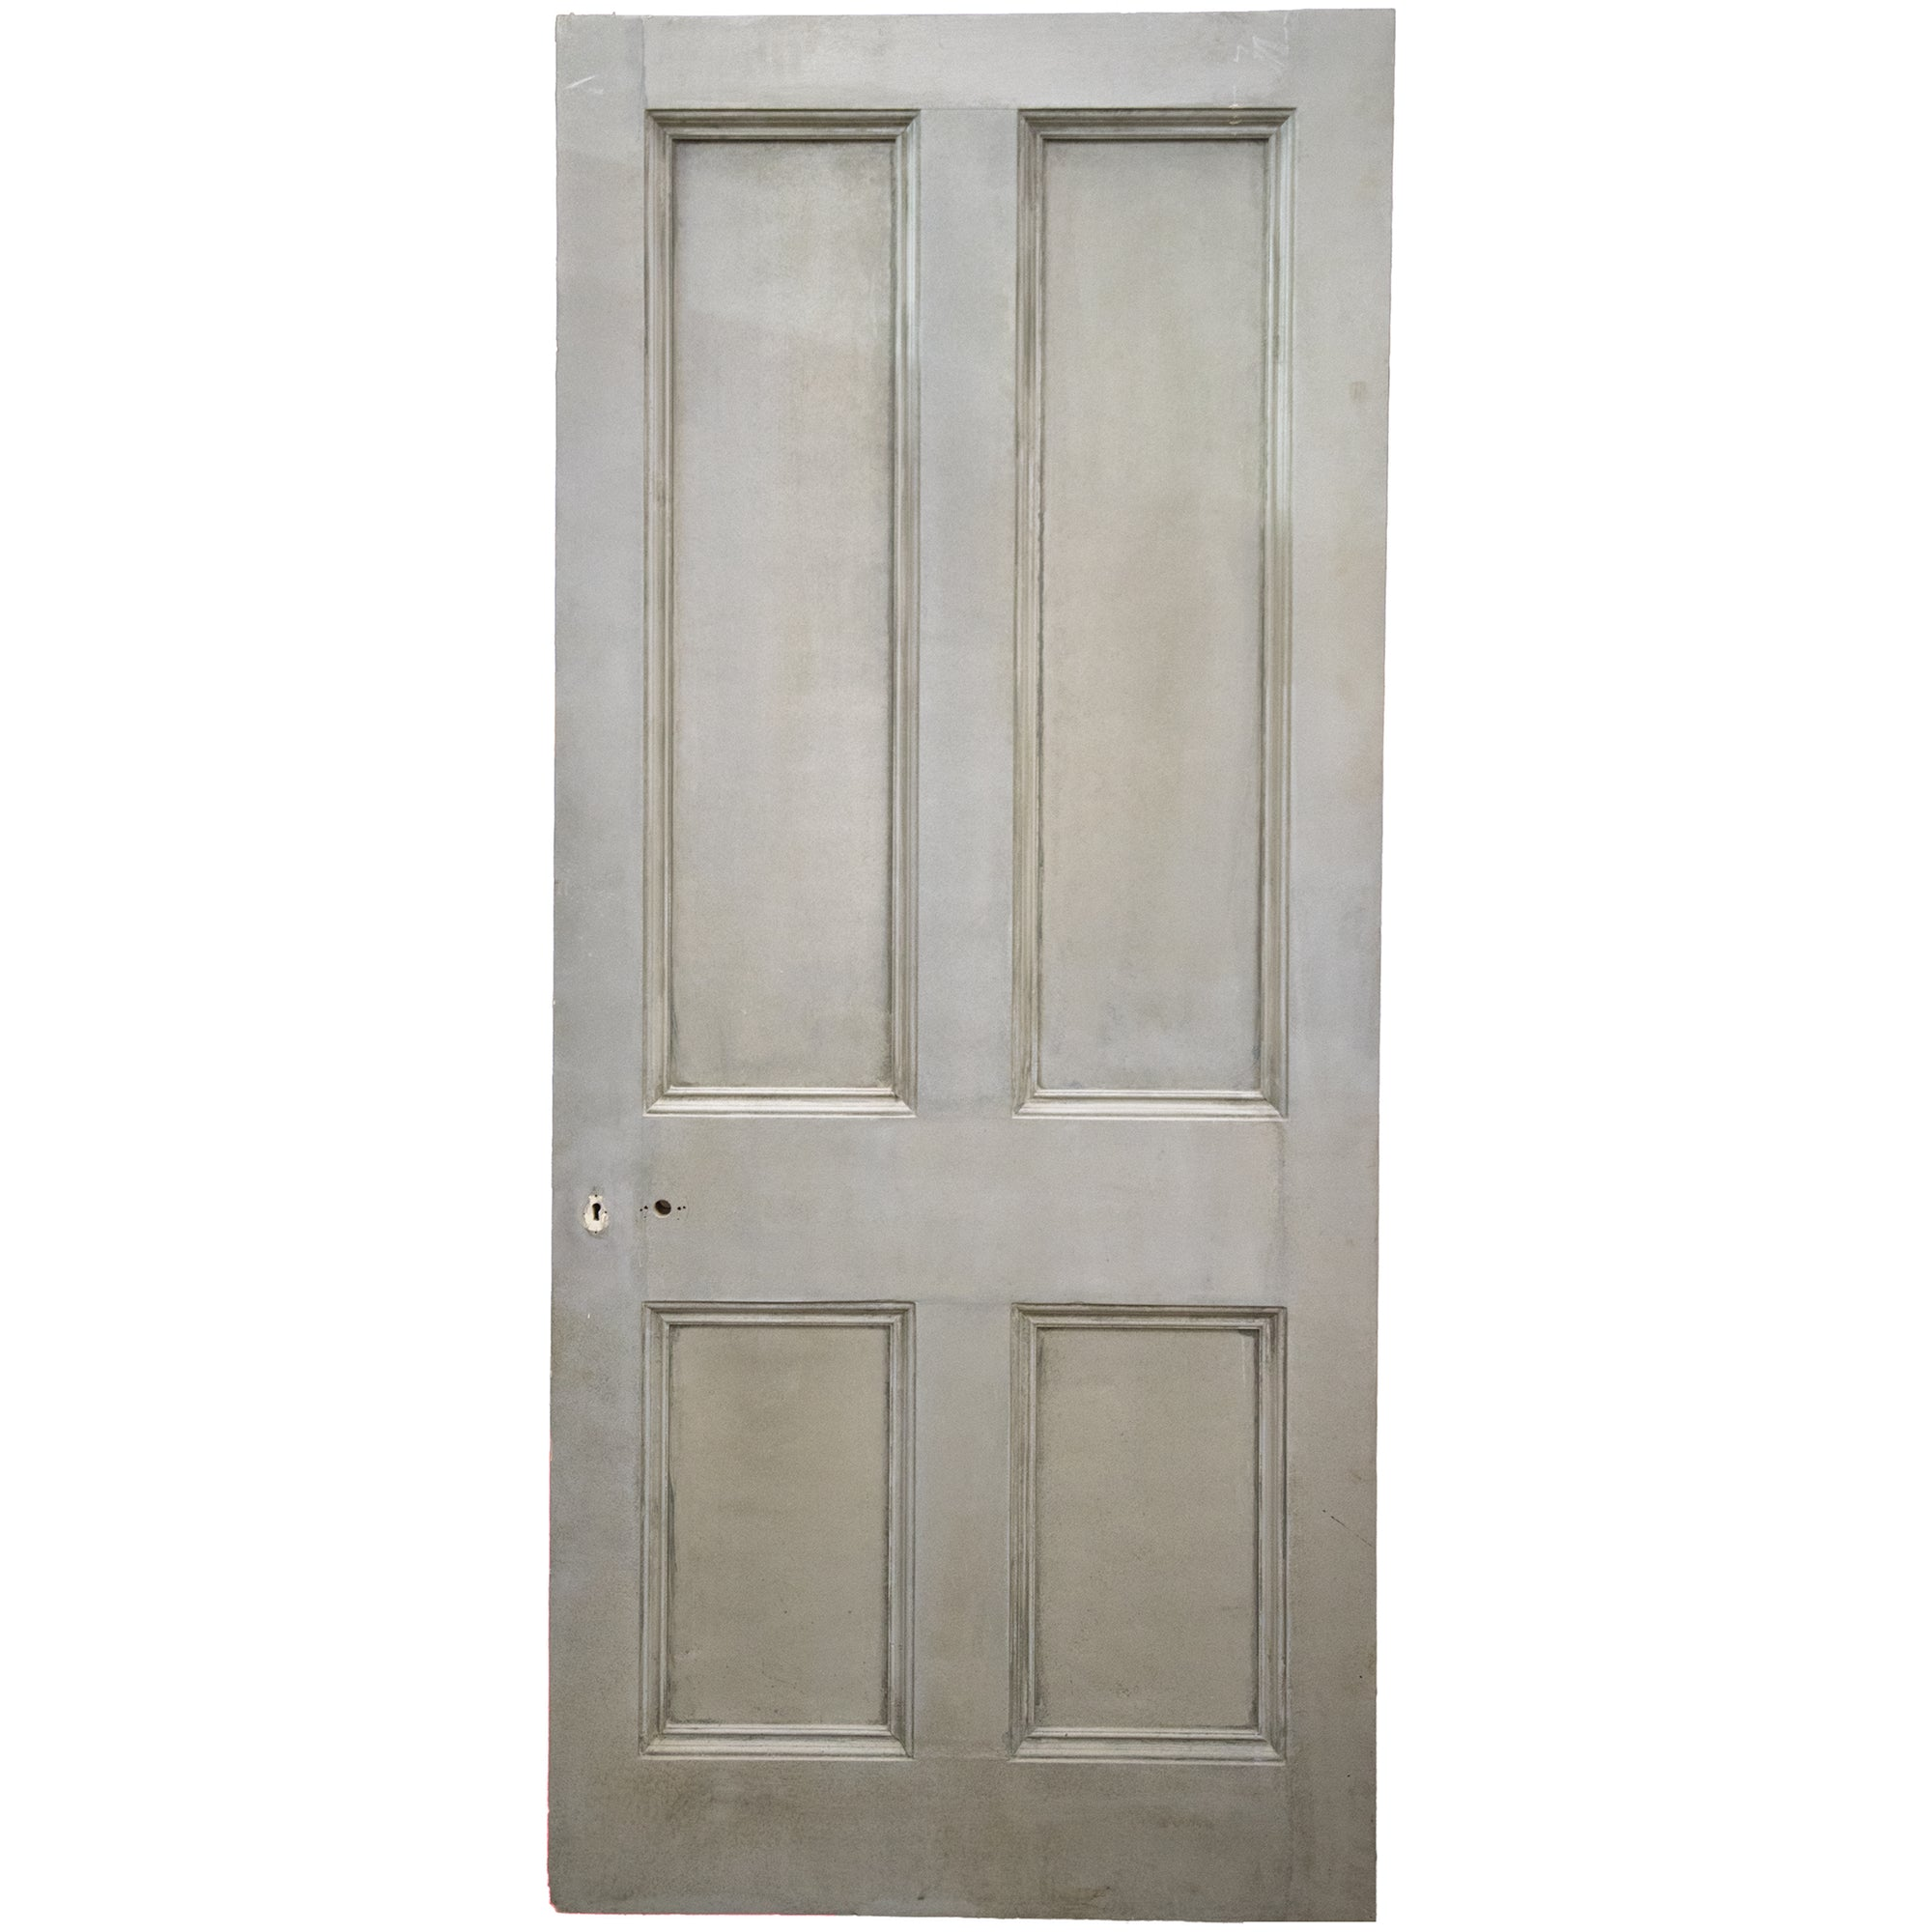 Large Antique Victorian Door - 206.5cm x 95cm